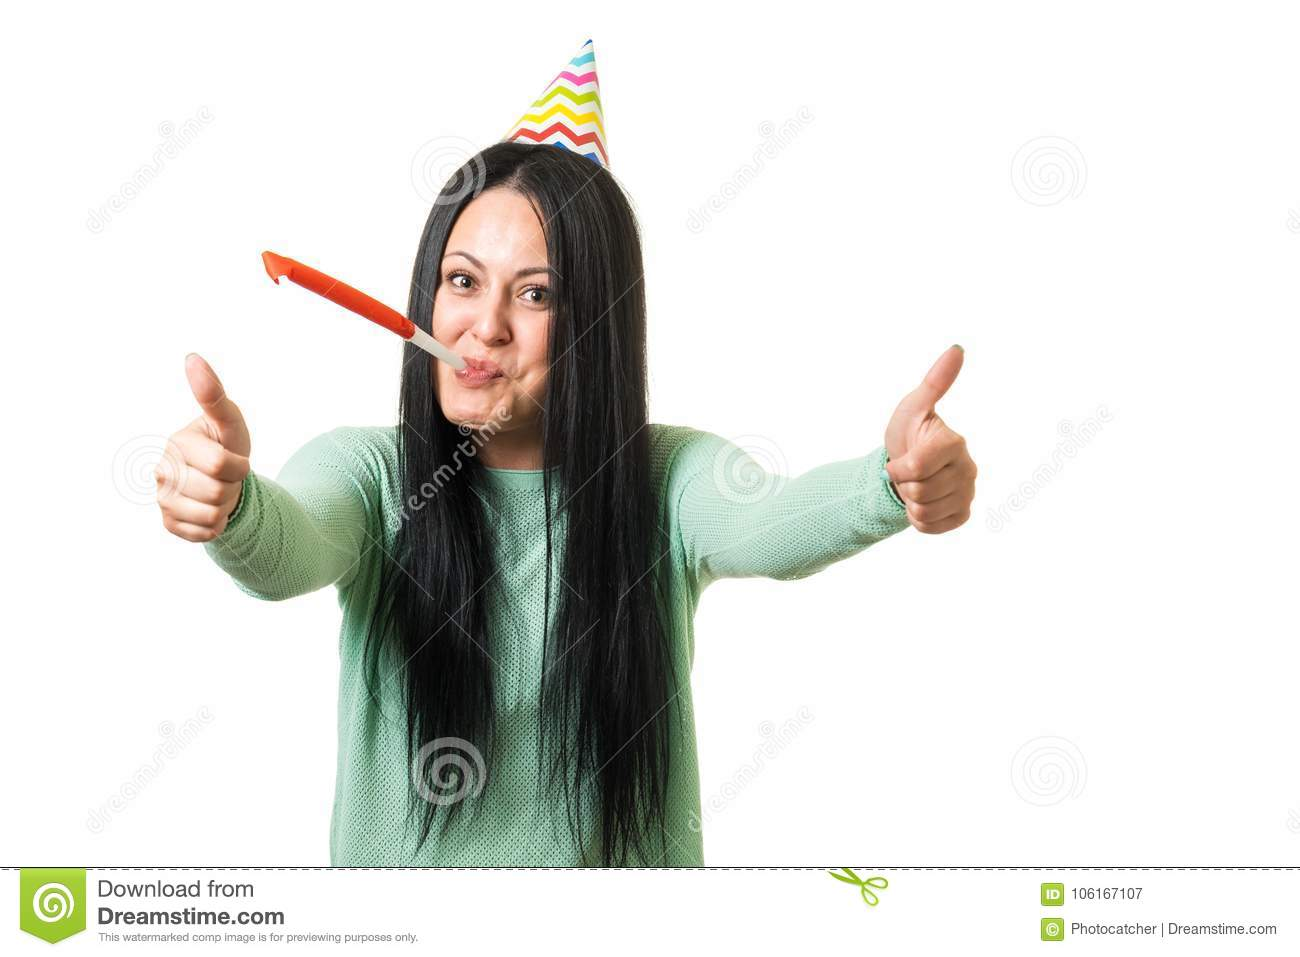 Young Cute Brunette Girl Celebrating Birthday With Party Stuff Showing Thumbs Up Gesture